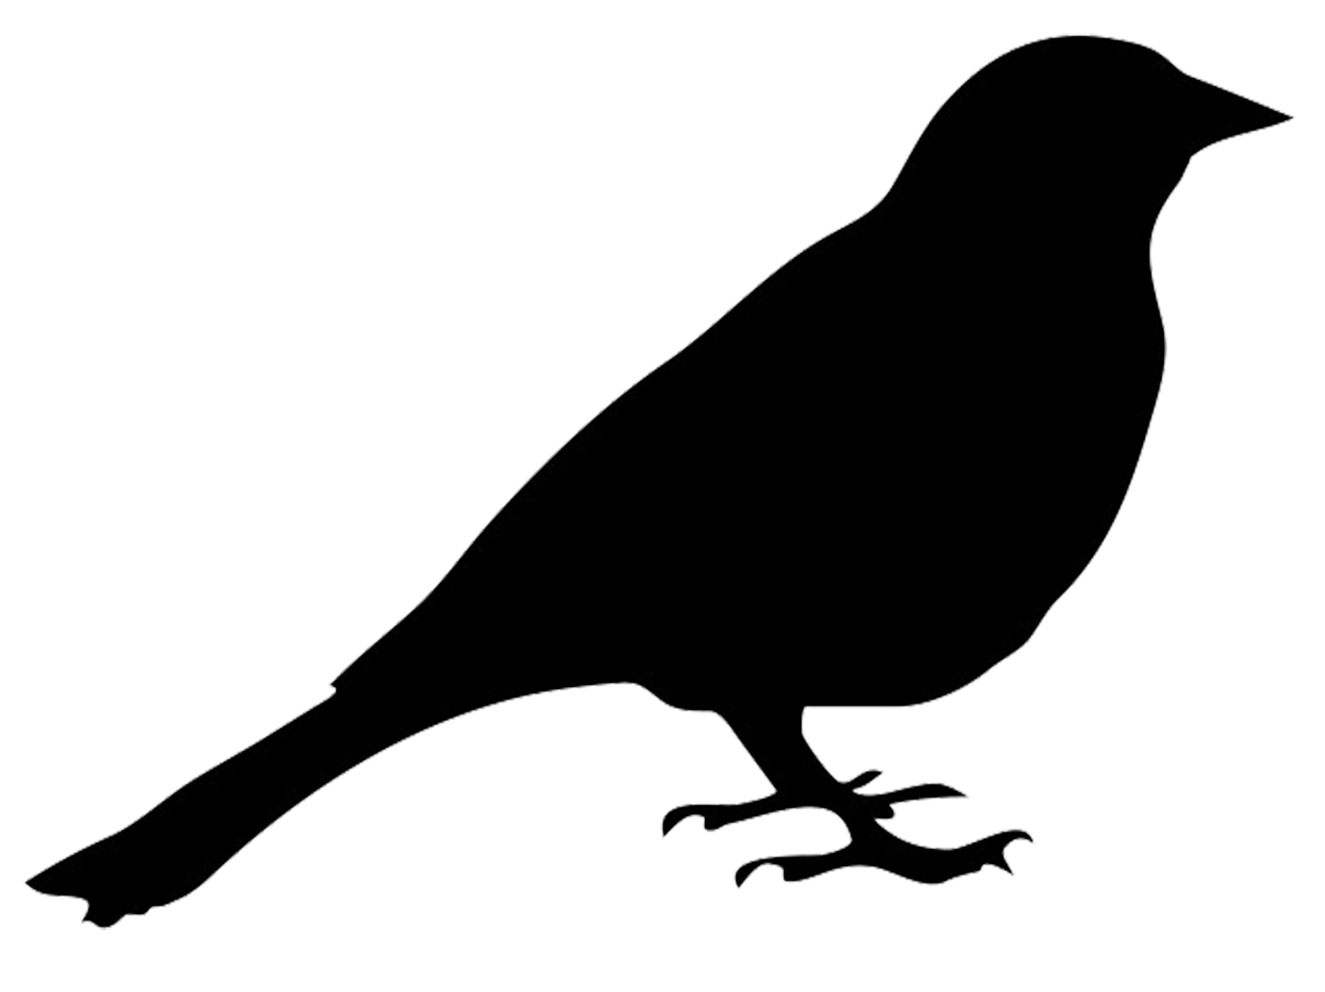 banner free Blackbird drawing dead crow. Silhouette of a sparrow